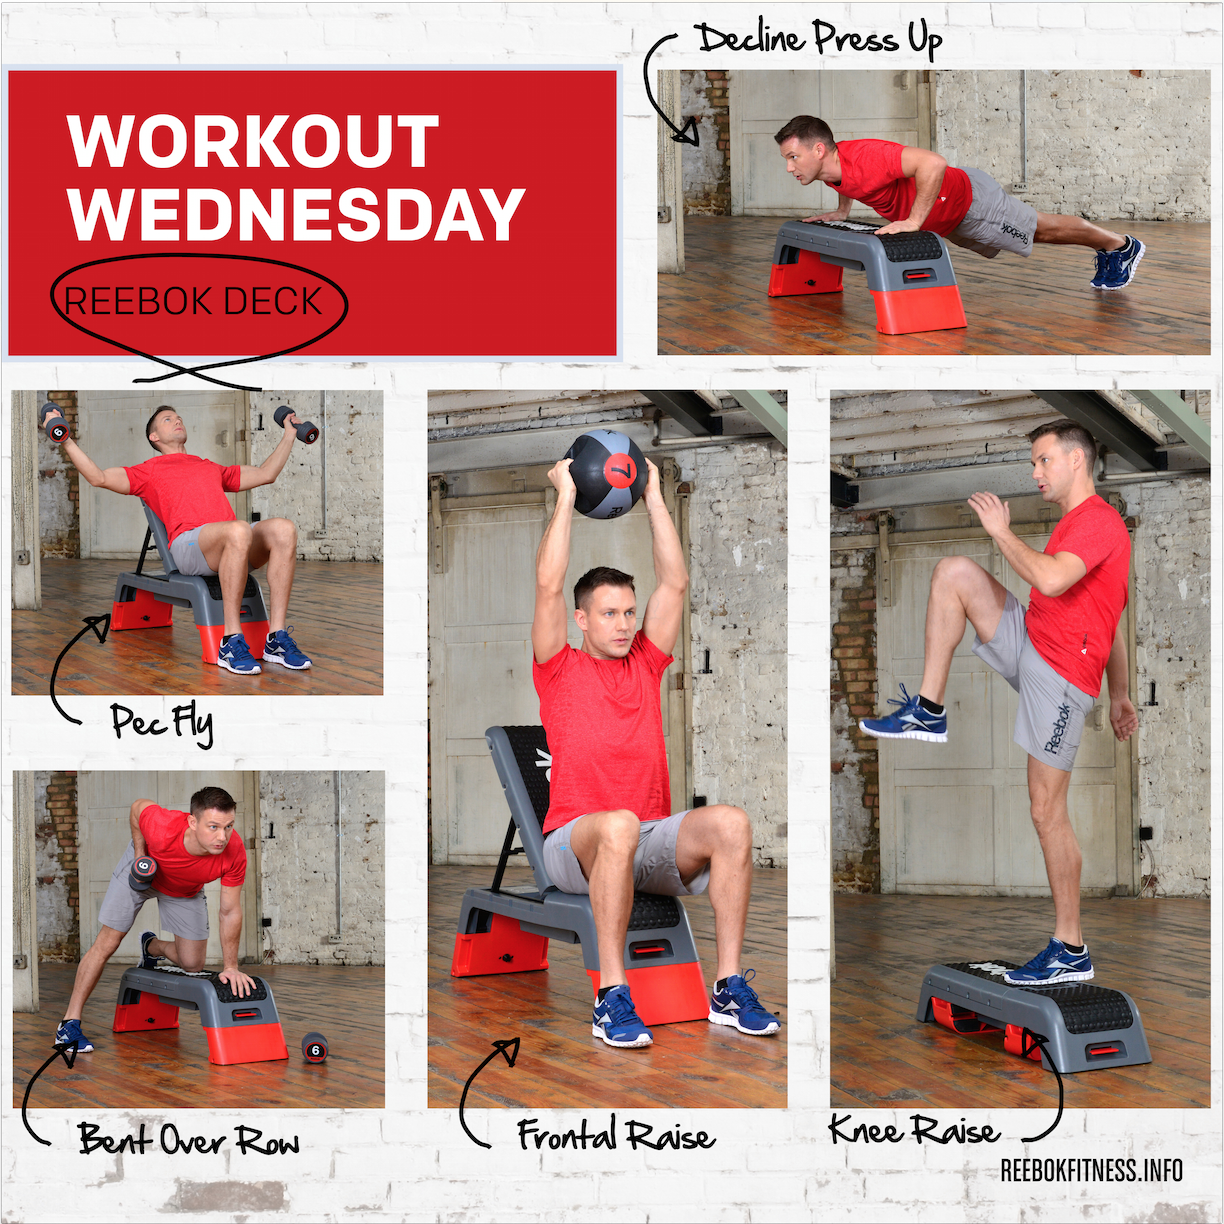 Reebok Strength Training Gloves Weight Lifting Fitness: Workout Wednesday With :The Reebok Deck #LIVEWITHFIRE